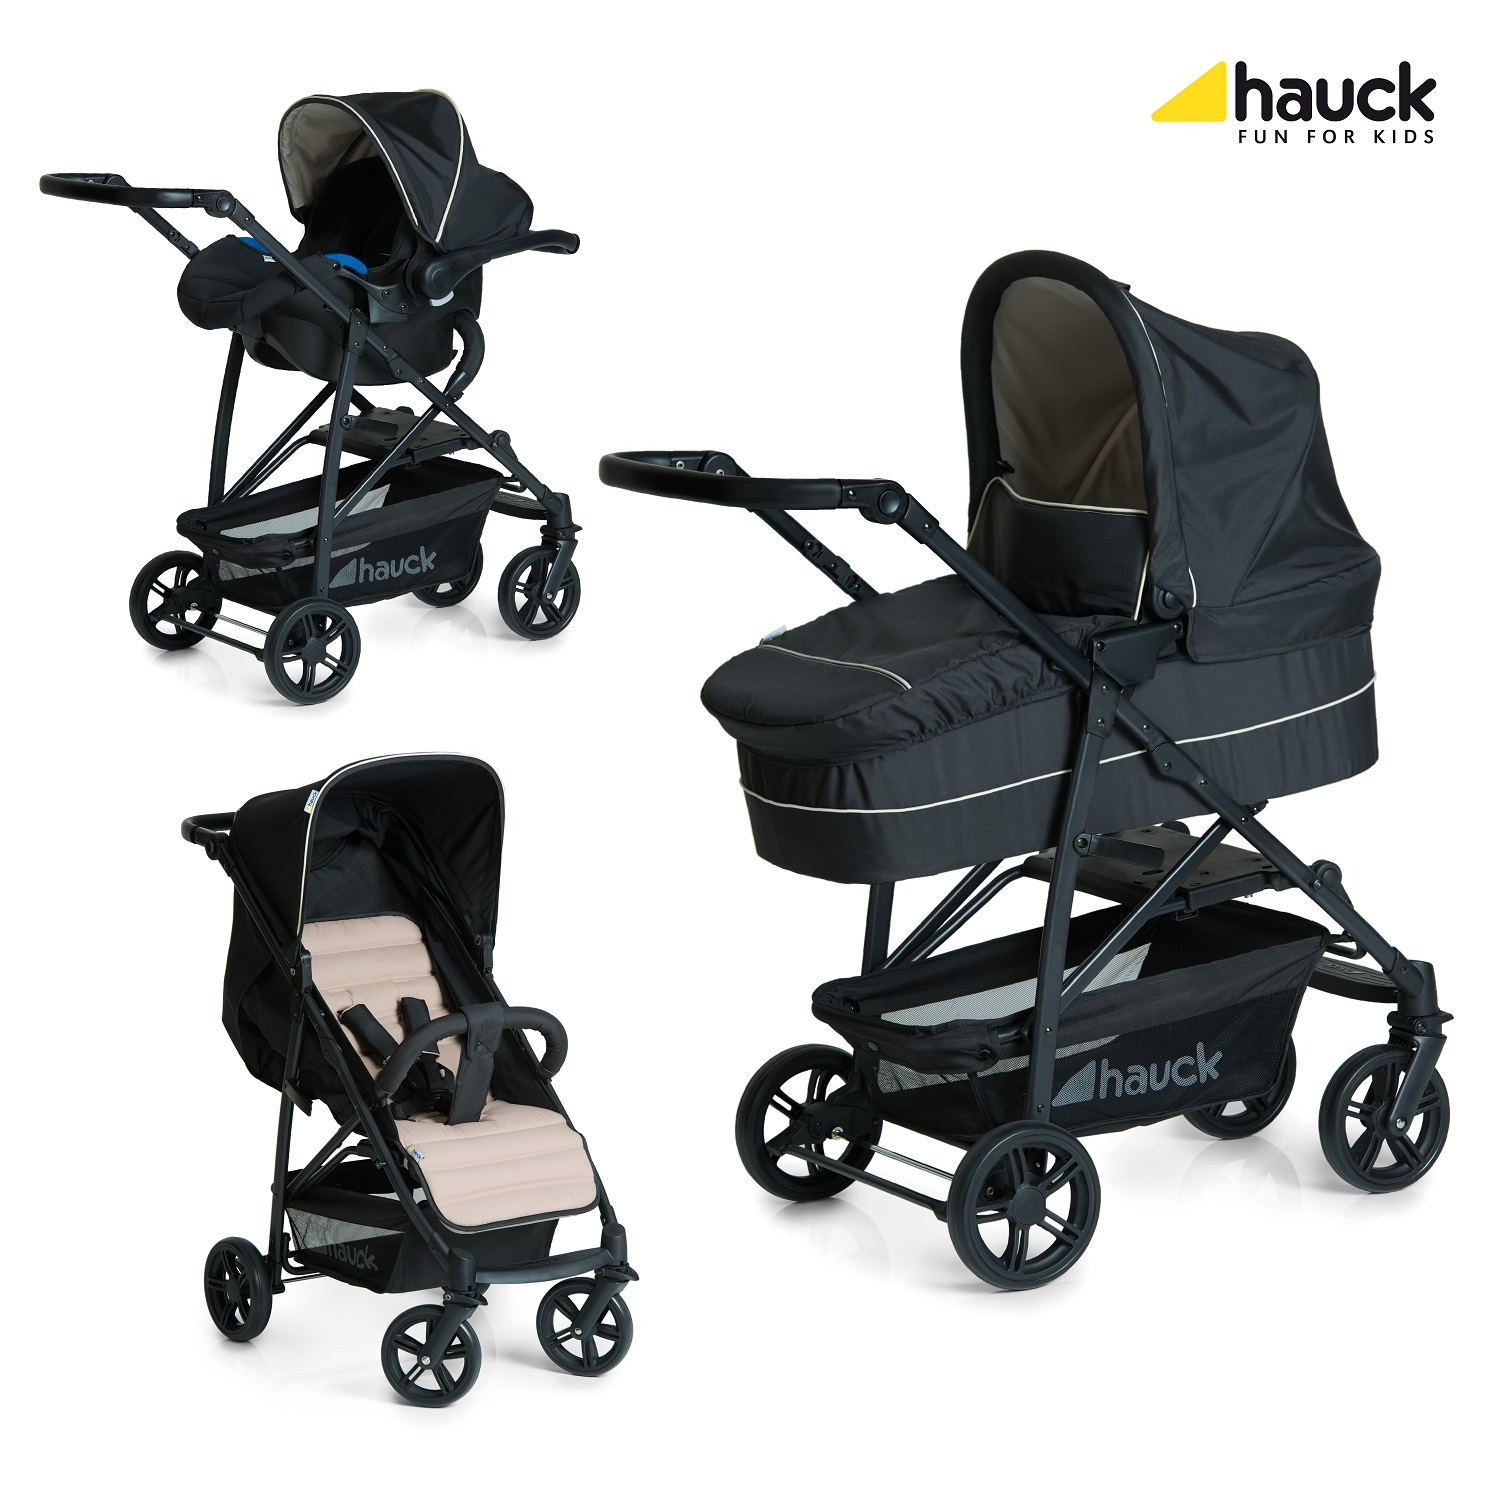 hauck rapid stroller 4 plus trio set 2017 caviar beige. Black Bedroom Furniture Sets. Home Design Ideas